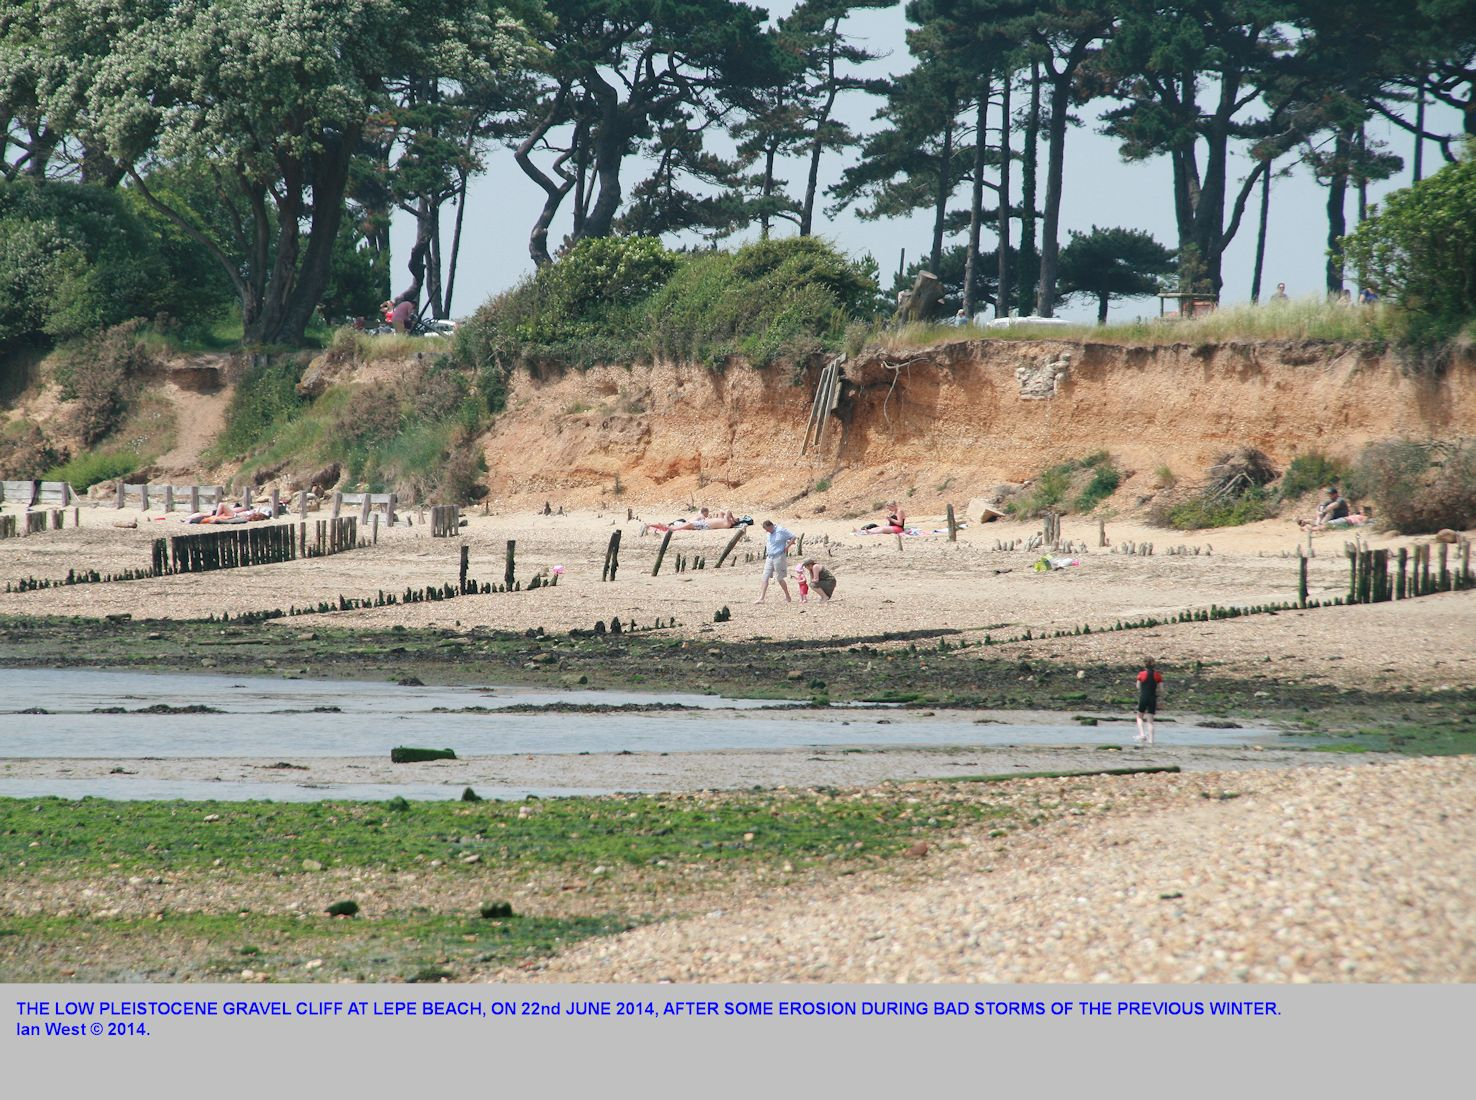 Pleistocene gravel cliff atLepe Beach, Hampshire, seen in June 2014, after storms from the previous winter have caused significant erosion